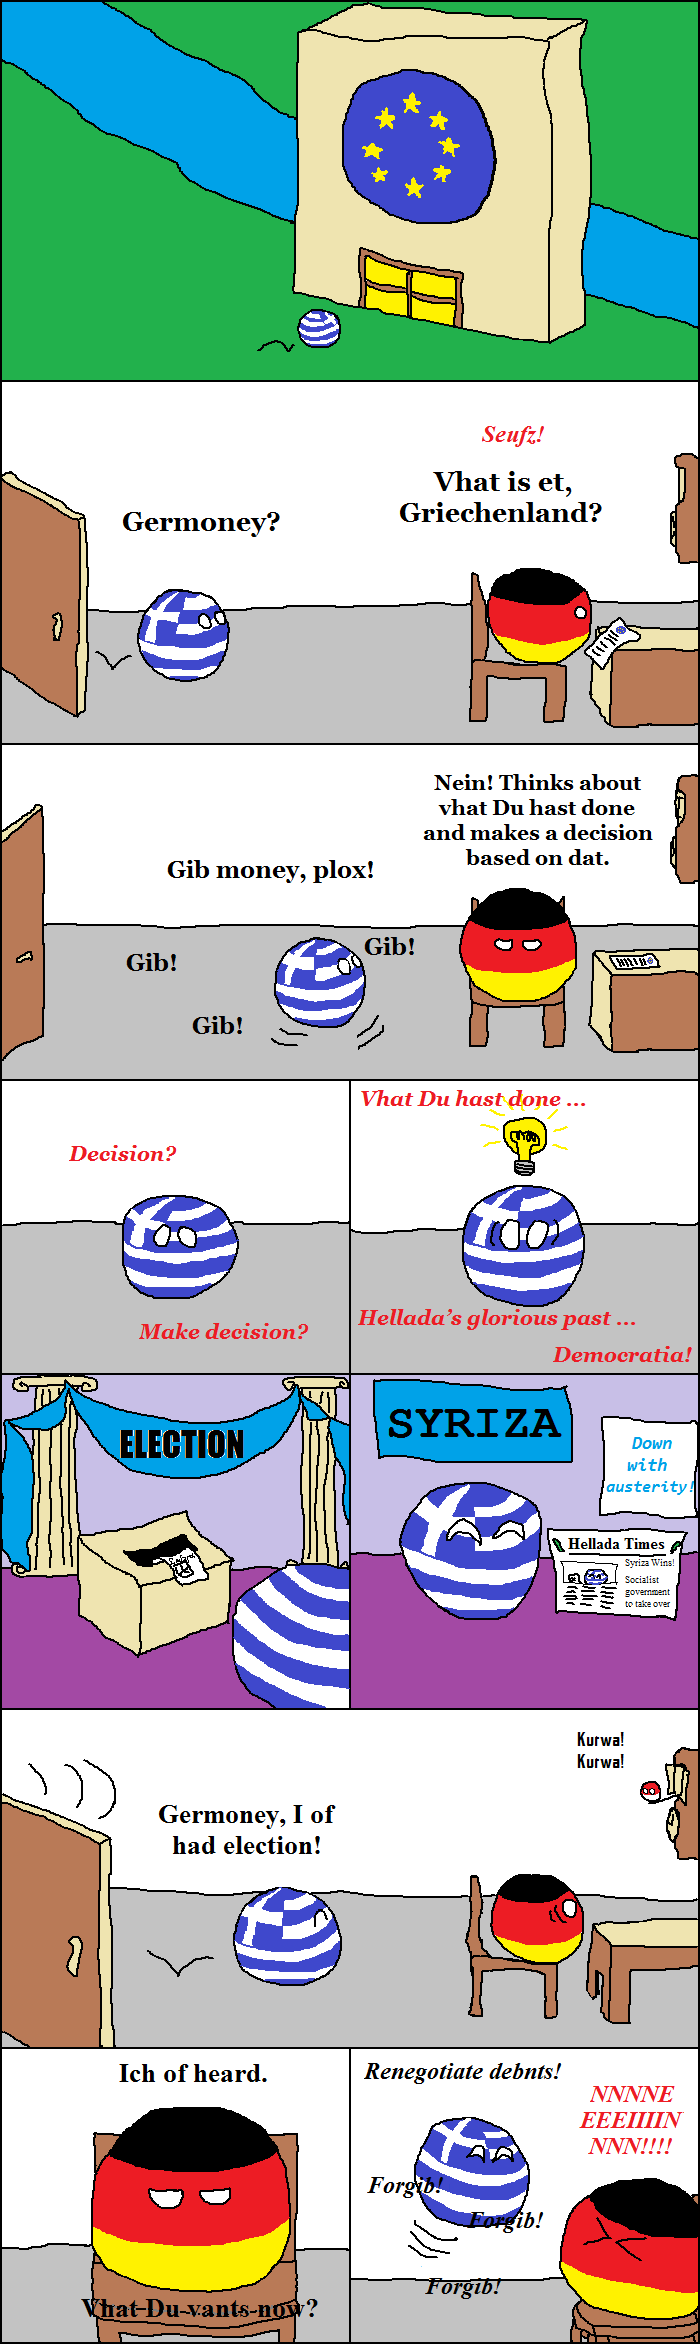 Greece's new plan